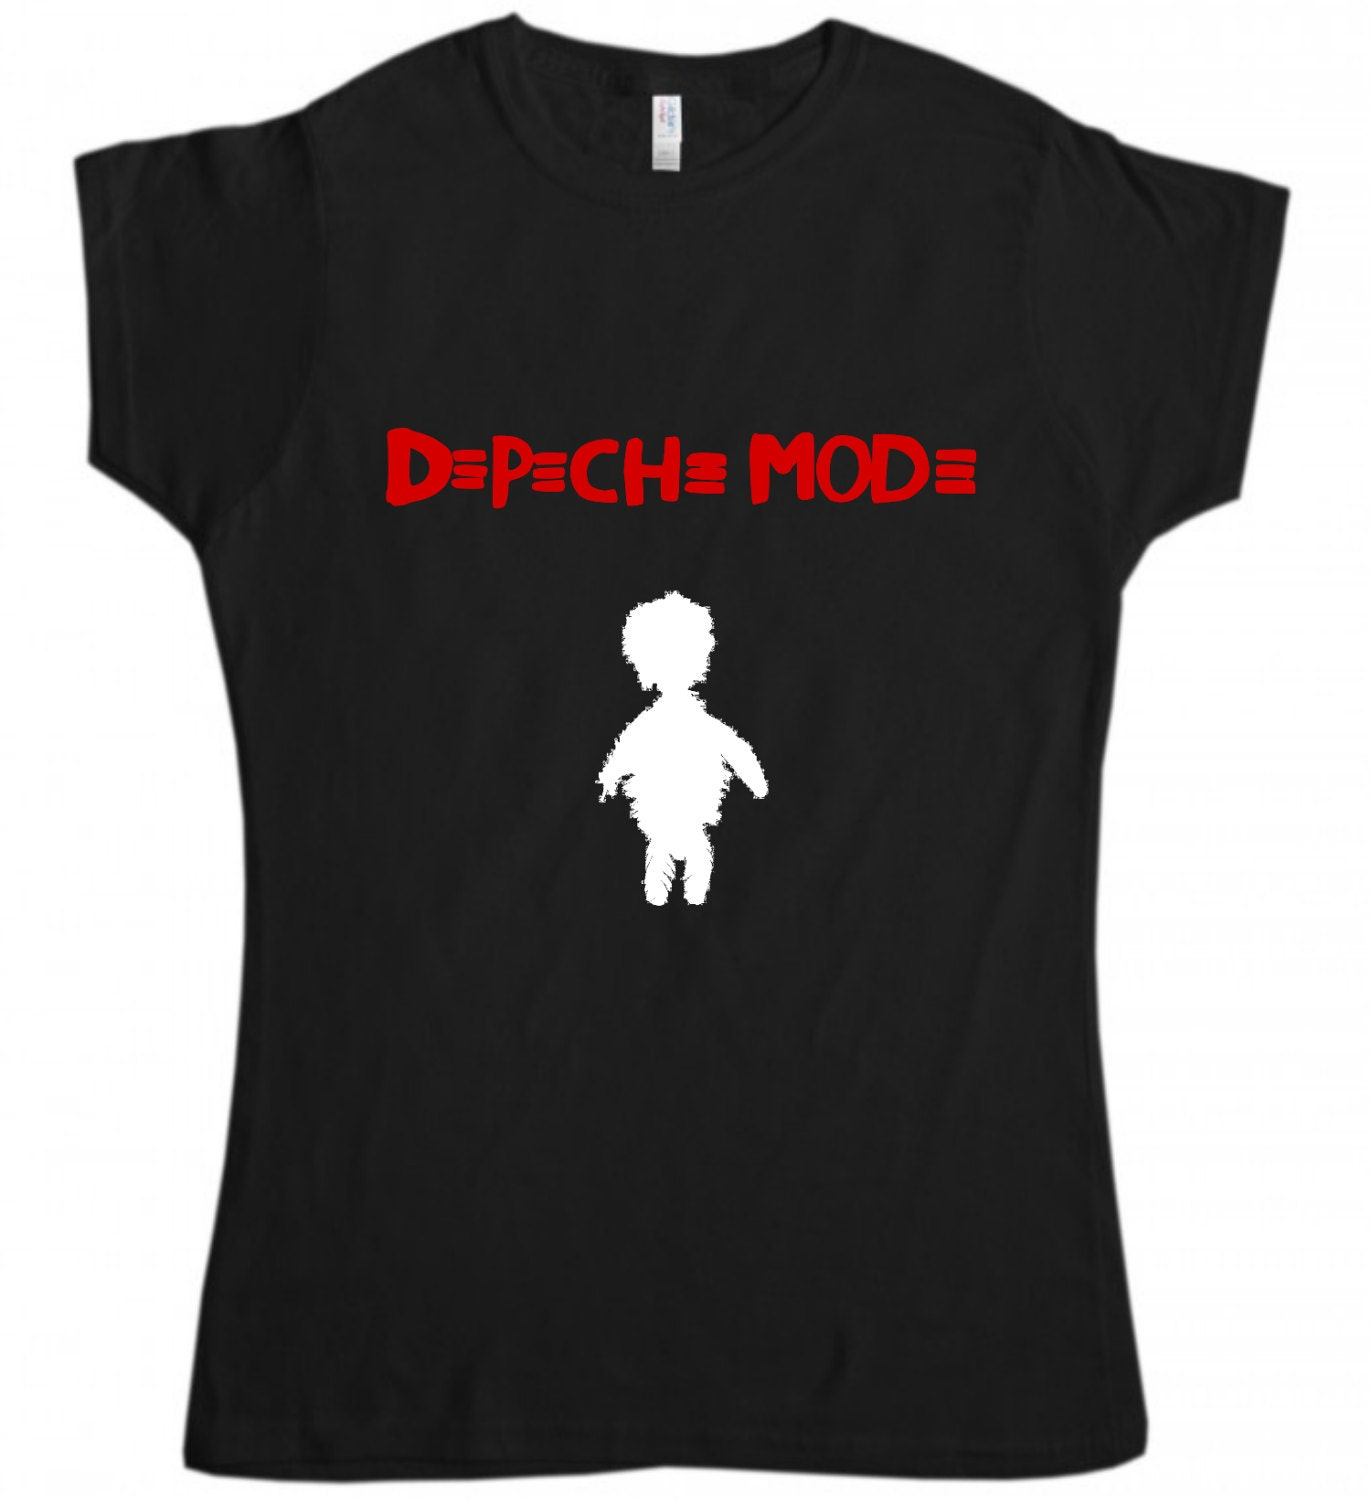 depeche mode t shirt synthpop new wave band shirt women lady. Black Bedroom Furniture Sets. Home Design Ideas